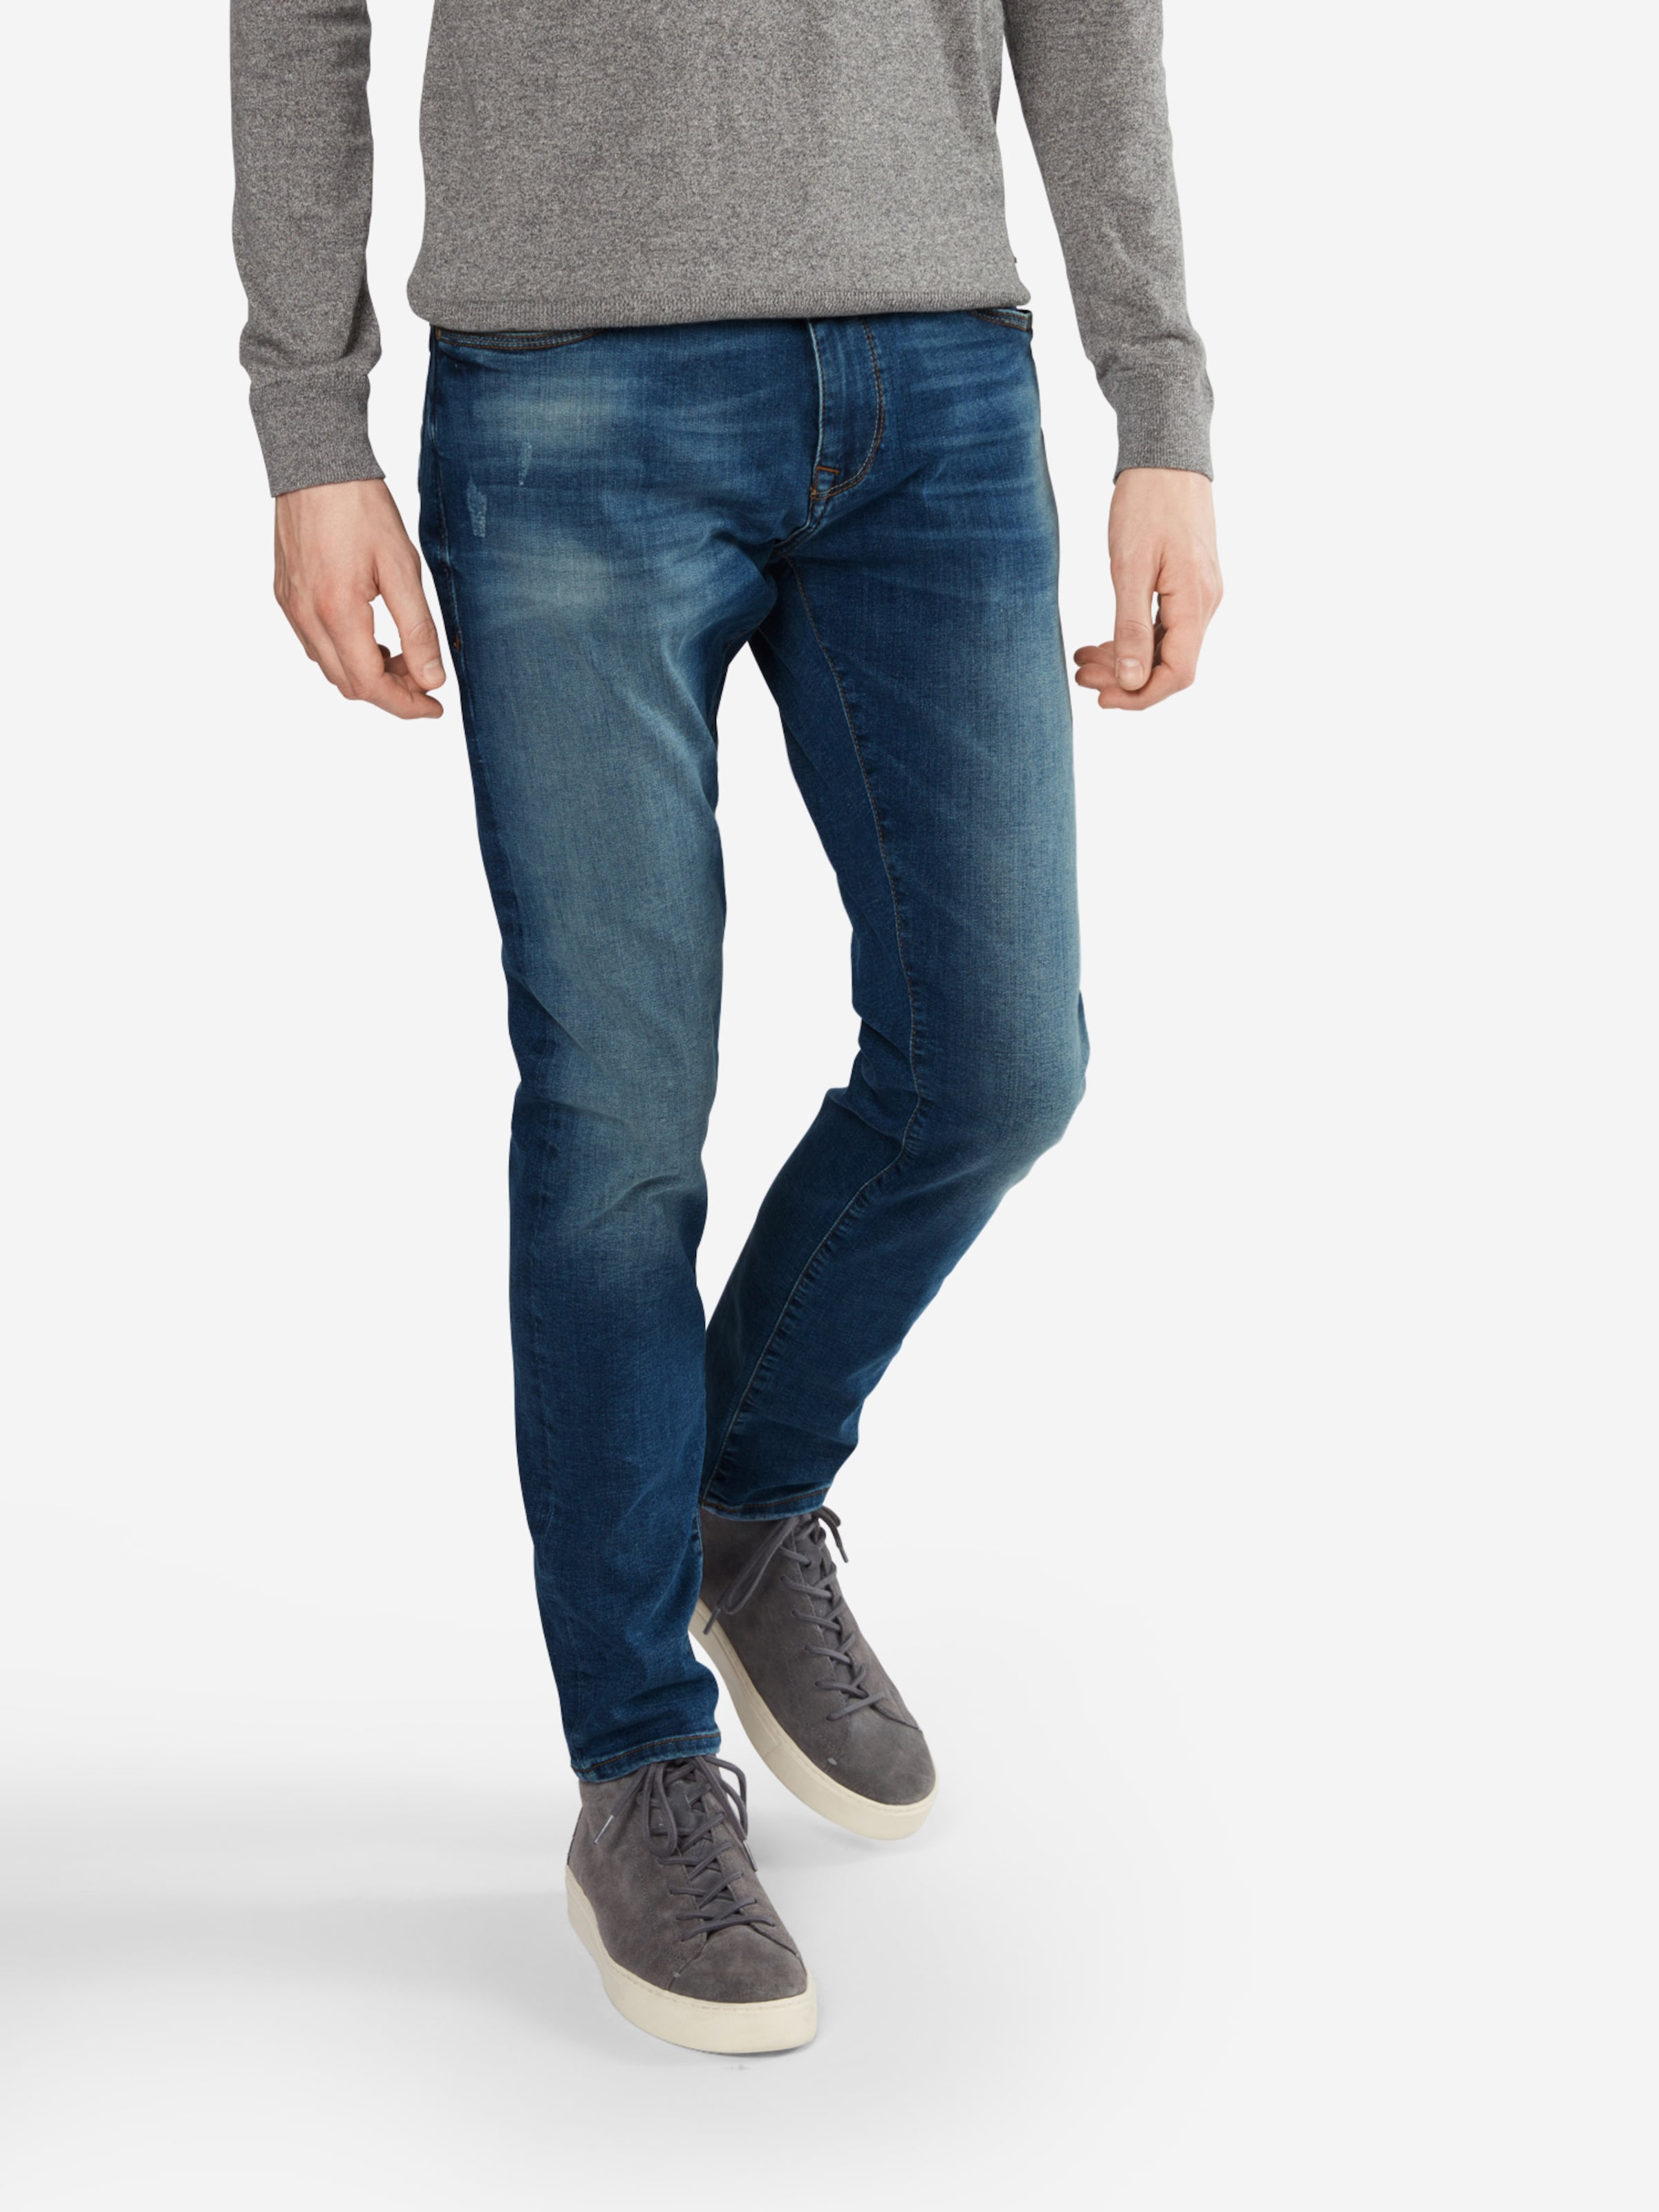 Jean 'james' Denim Mavi En Bleu nwvmN80